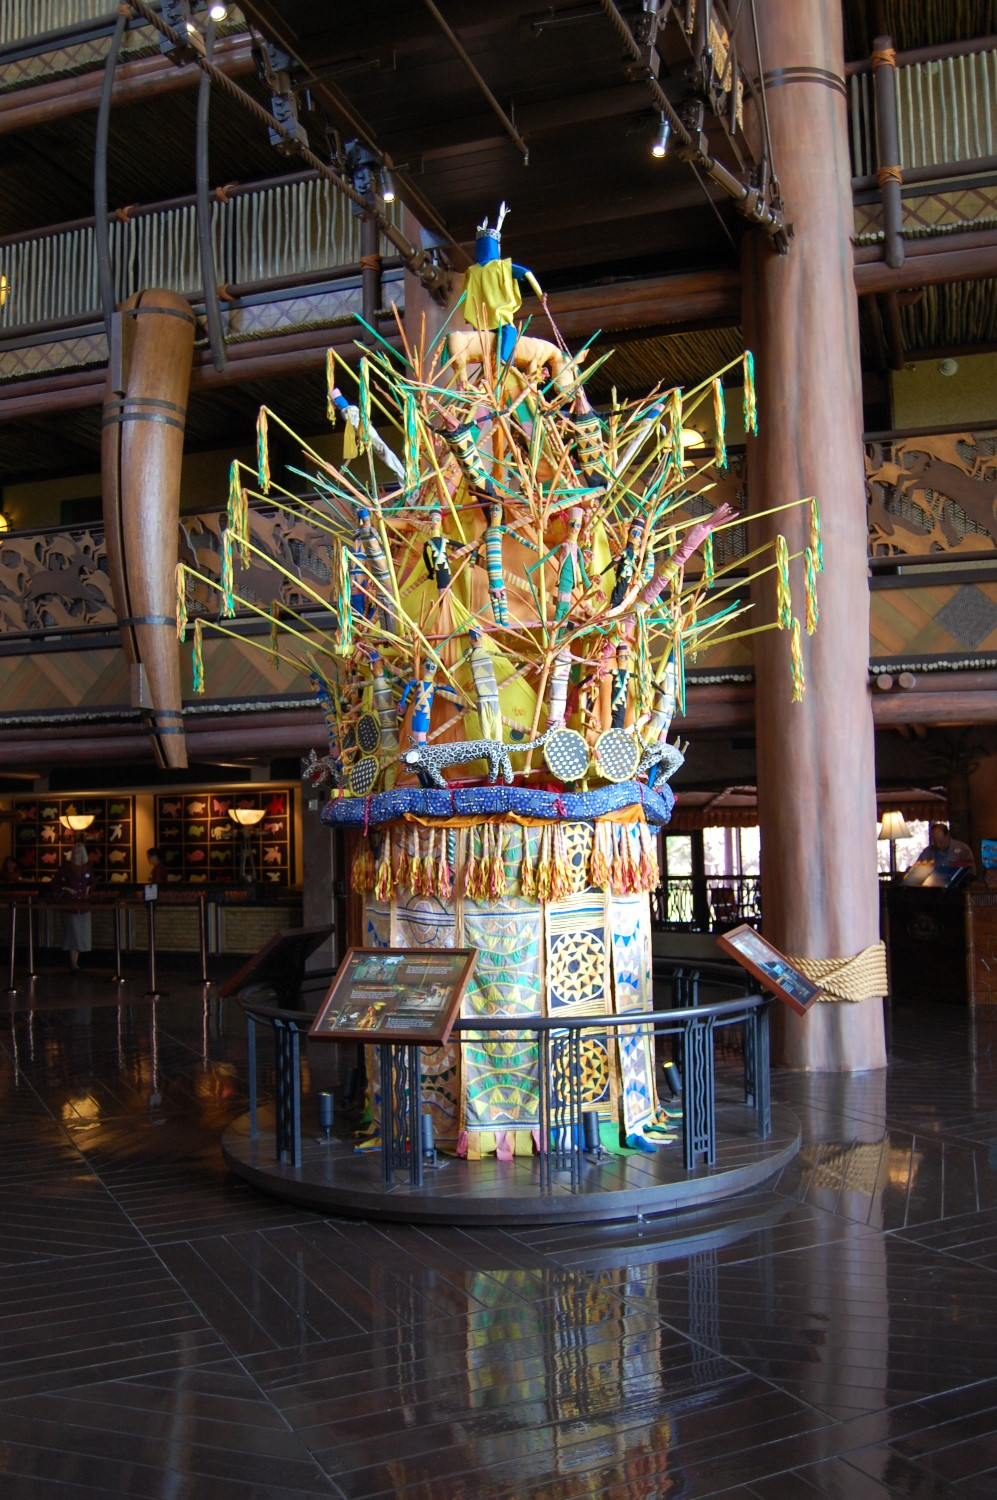 There is a large collection of African Art on display at Disney's Animal Kingdom Lodge / Walt Disney World Resort.